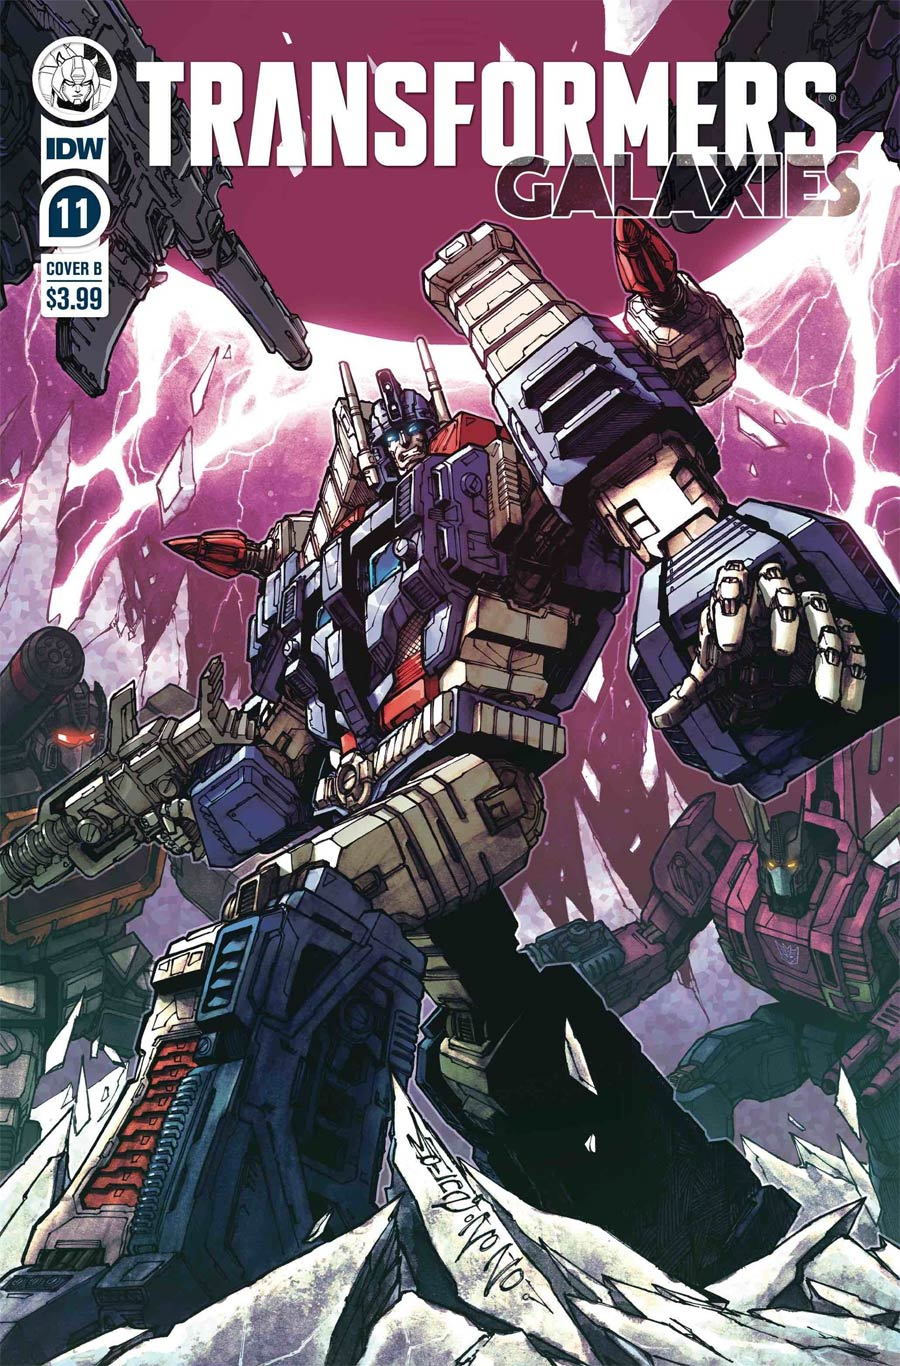 Transformers Galaxies #11 Cover B Variant Alex Milne Cover